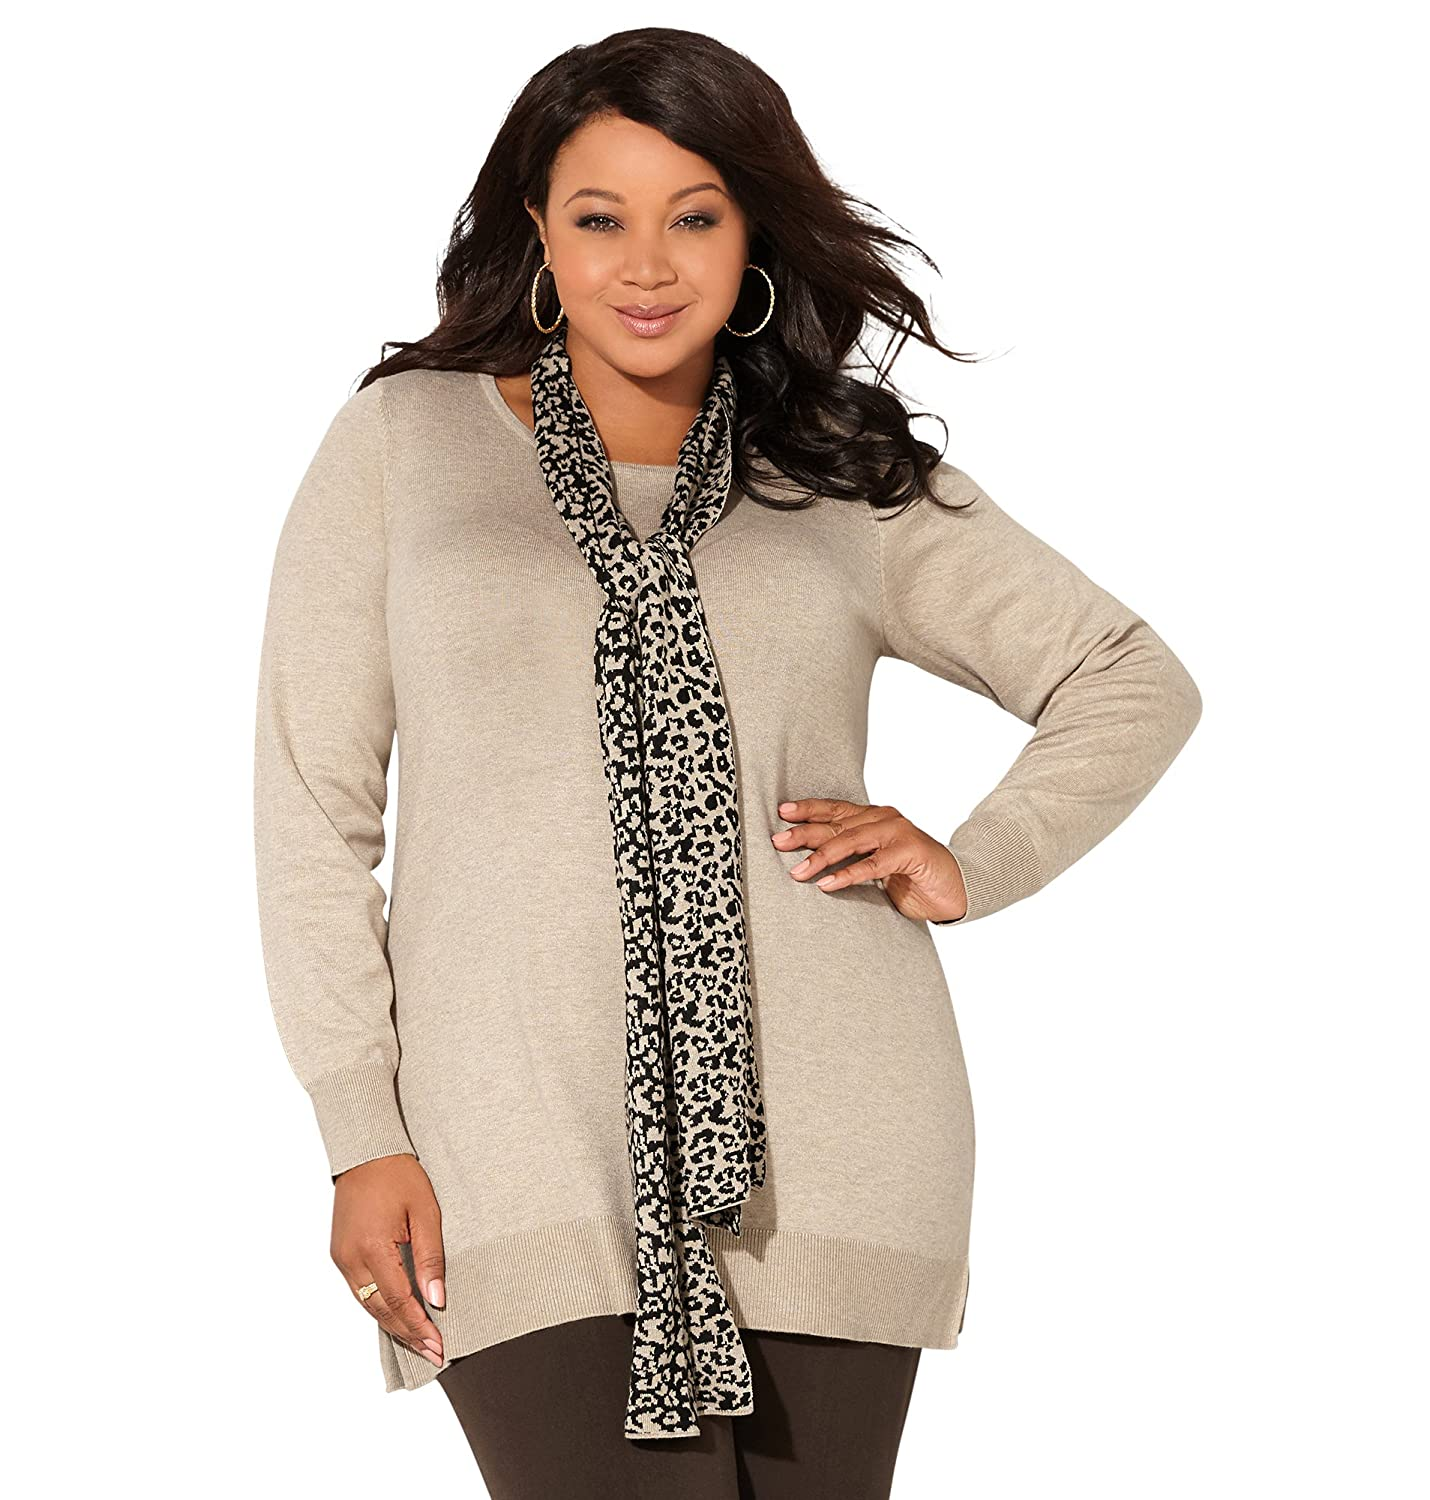 AVENUE Women's Pullover Sweater with Cheetah Removable Scarf